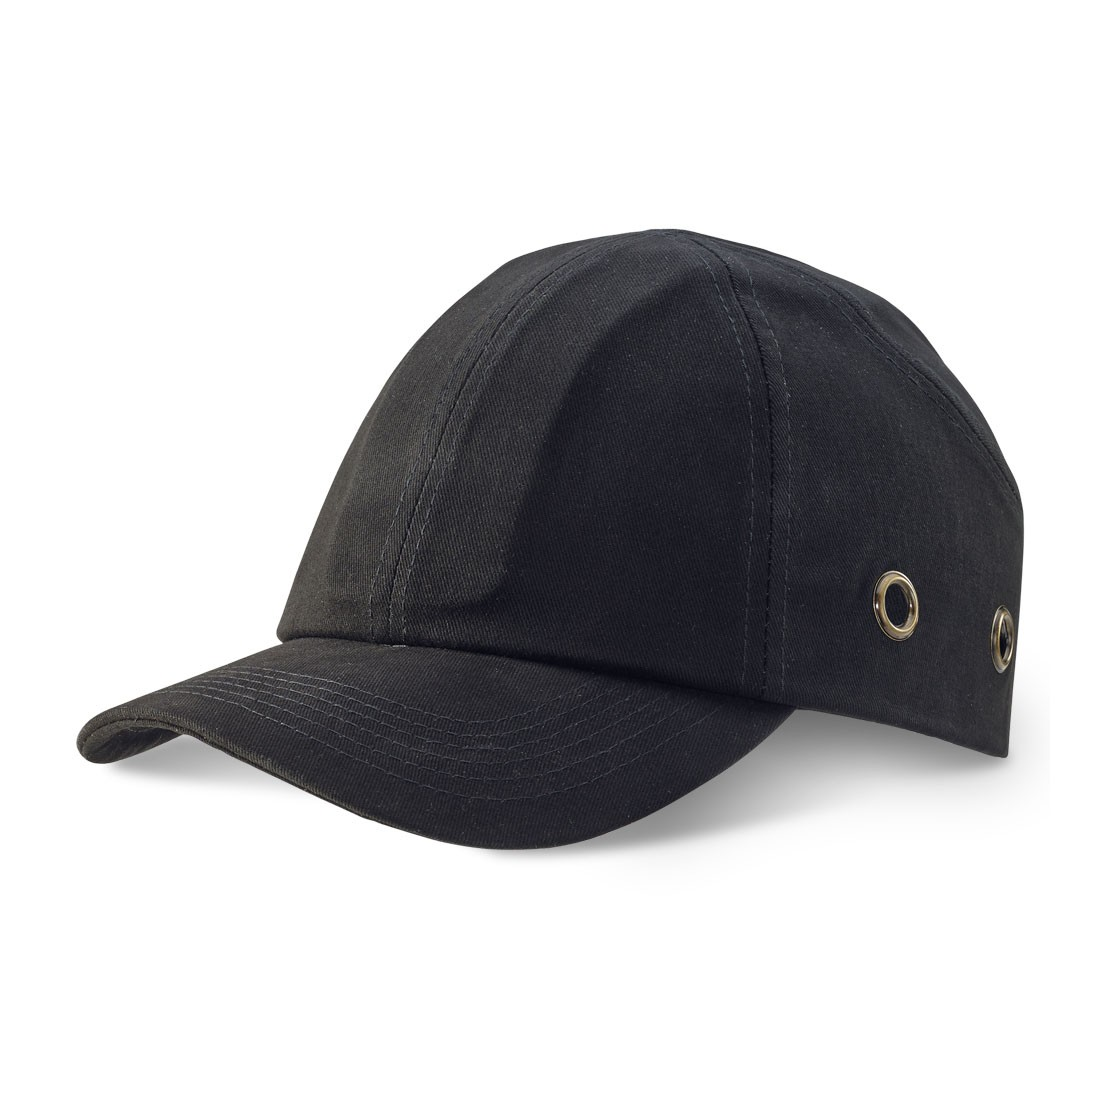 Safety Baseball Style Lightweight ABS Black Bump Cap with Ventalation